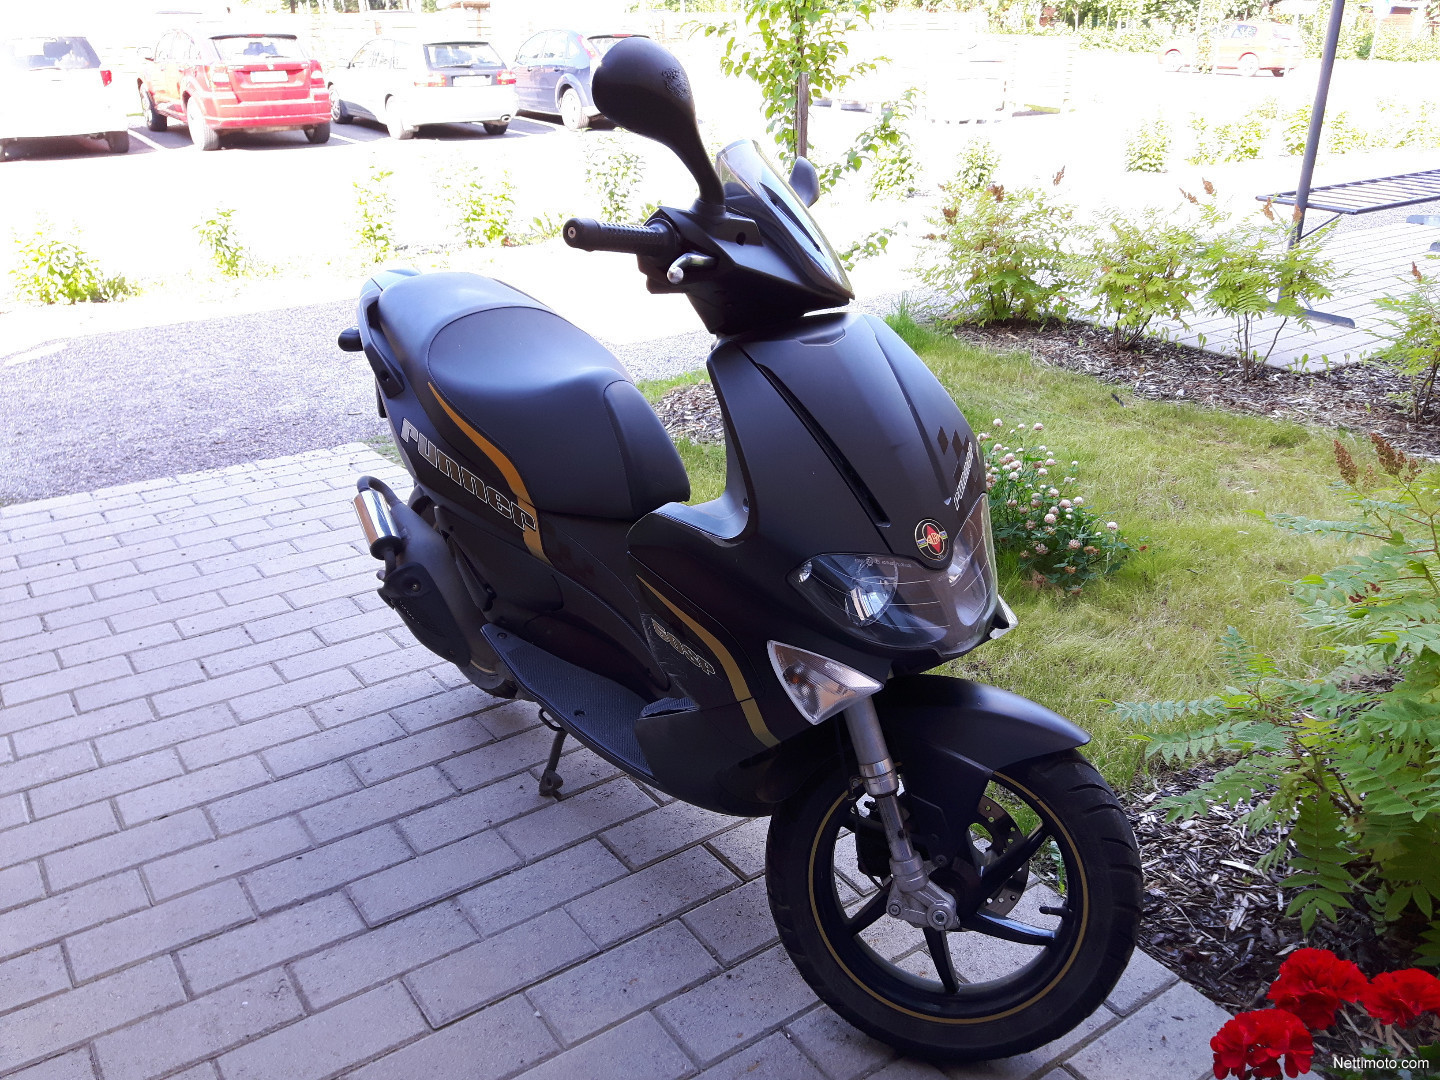 gilera runner sp 50 50 cm 2012 j rvenp scooter nettimoto. Black Bedroom Furniture Sets. Home Design Ideas